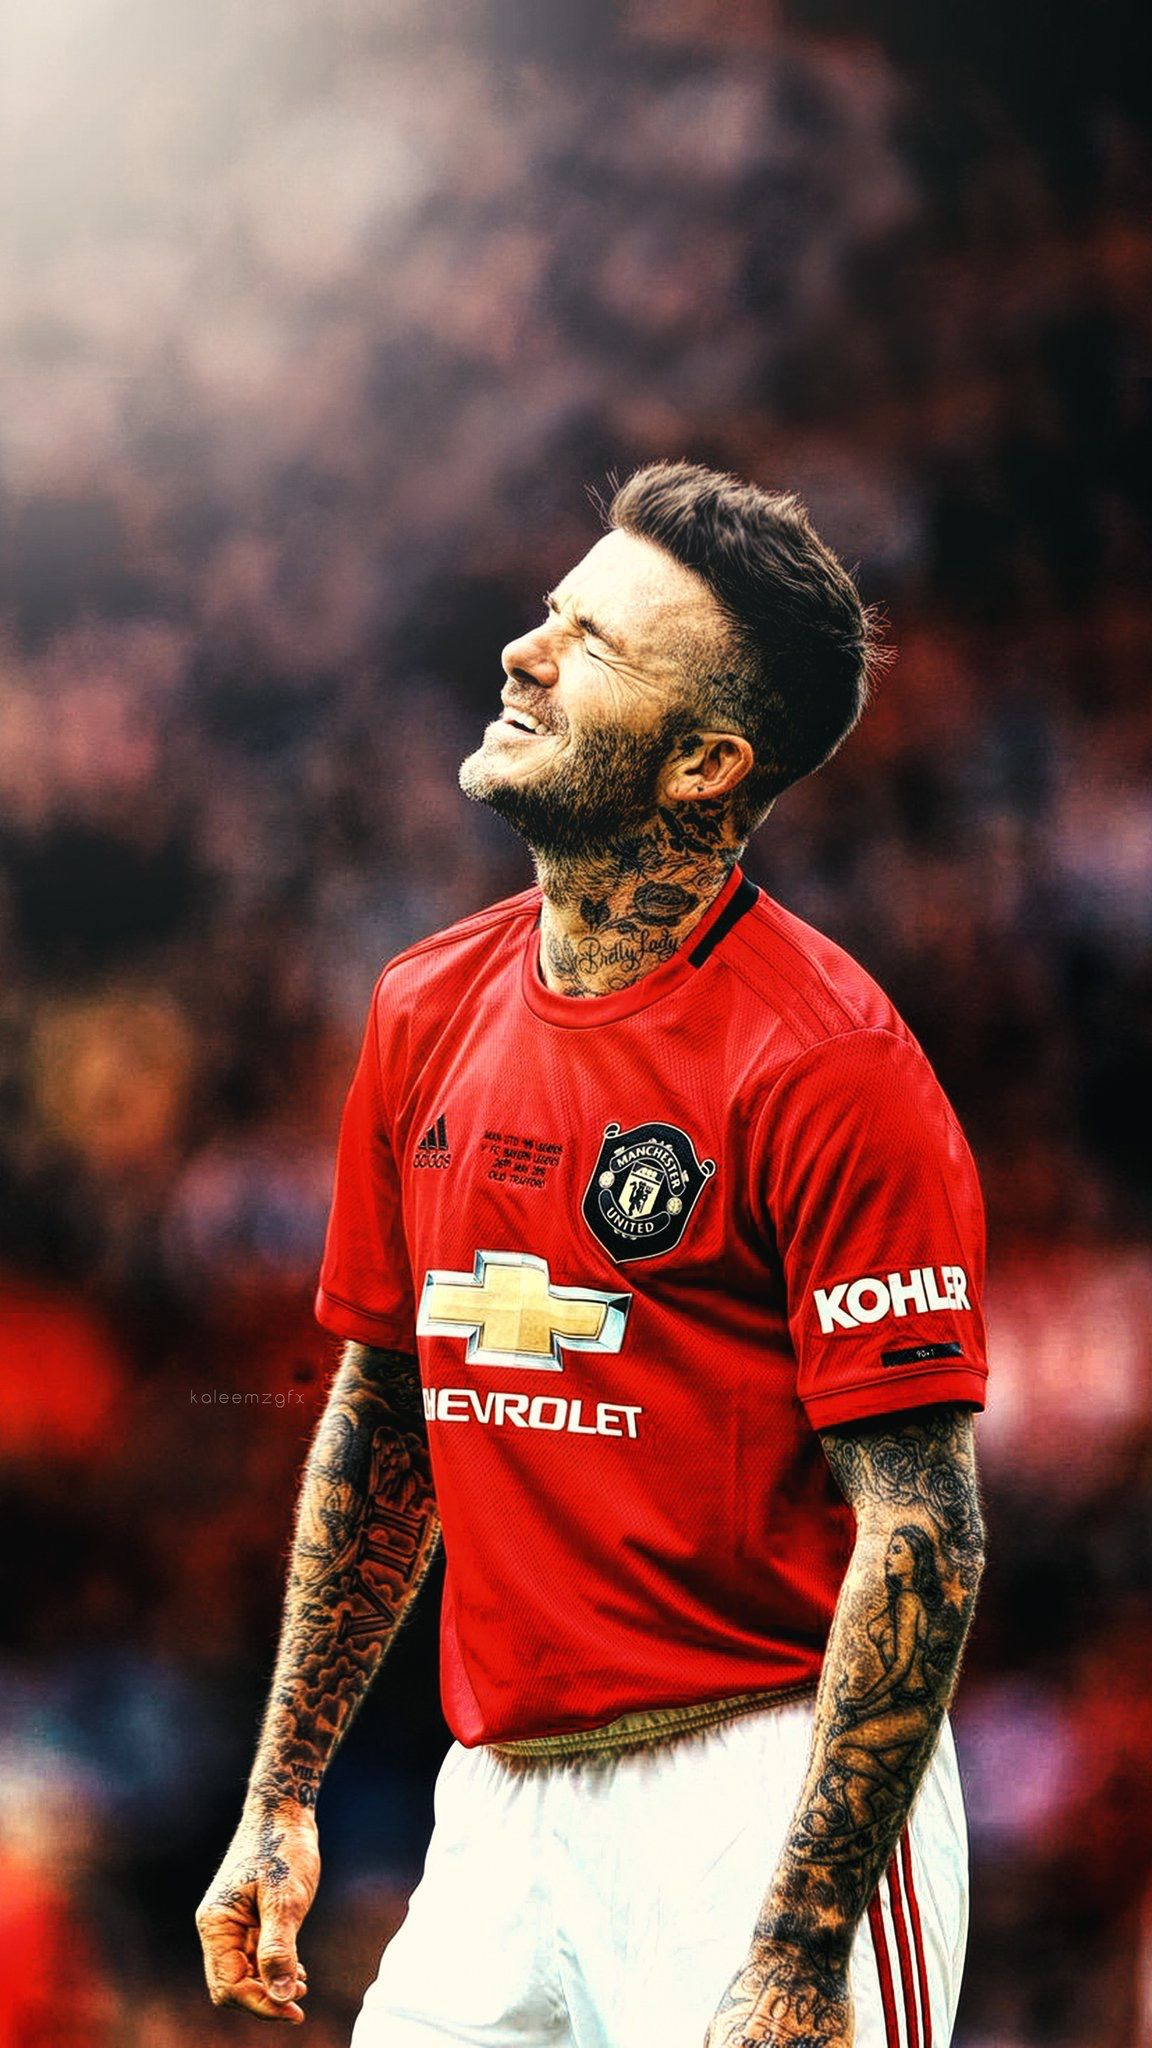 Pin By Chloe On Soccer David Beckham Manchester United David Beckham Football Manchester United Soccer